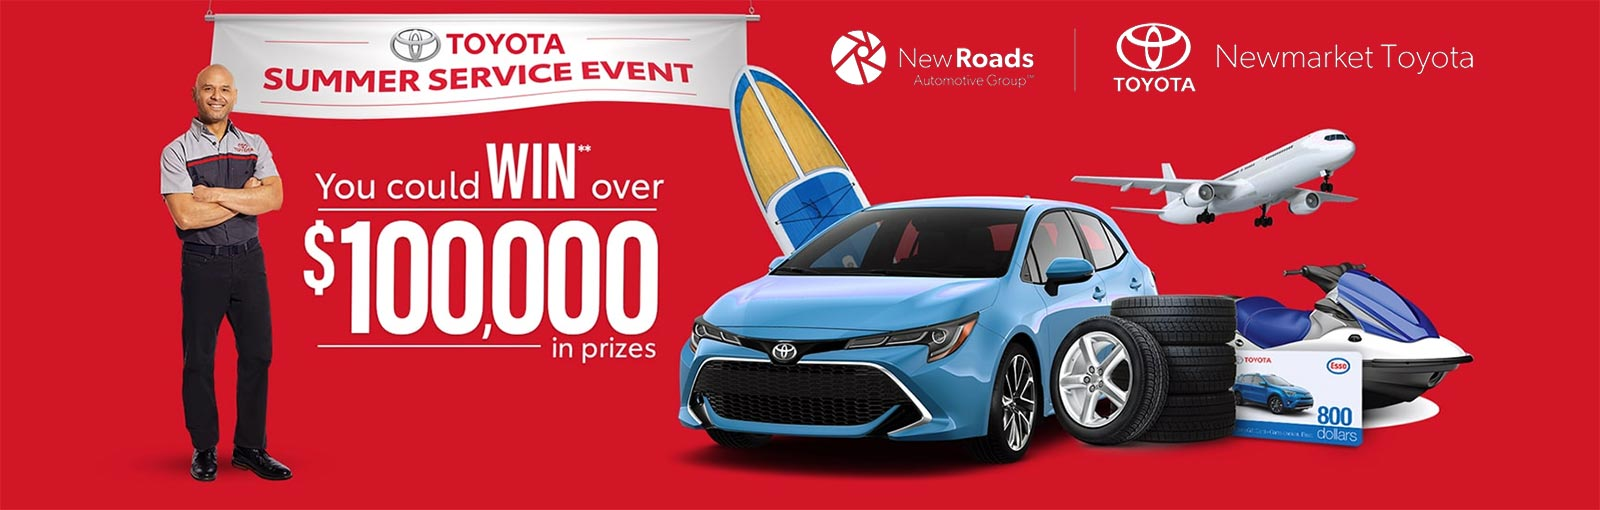 Toyota Summer Service Event in Newmarket Ontario